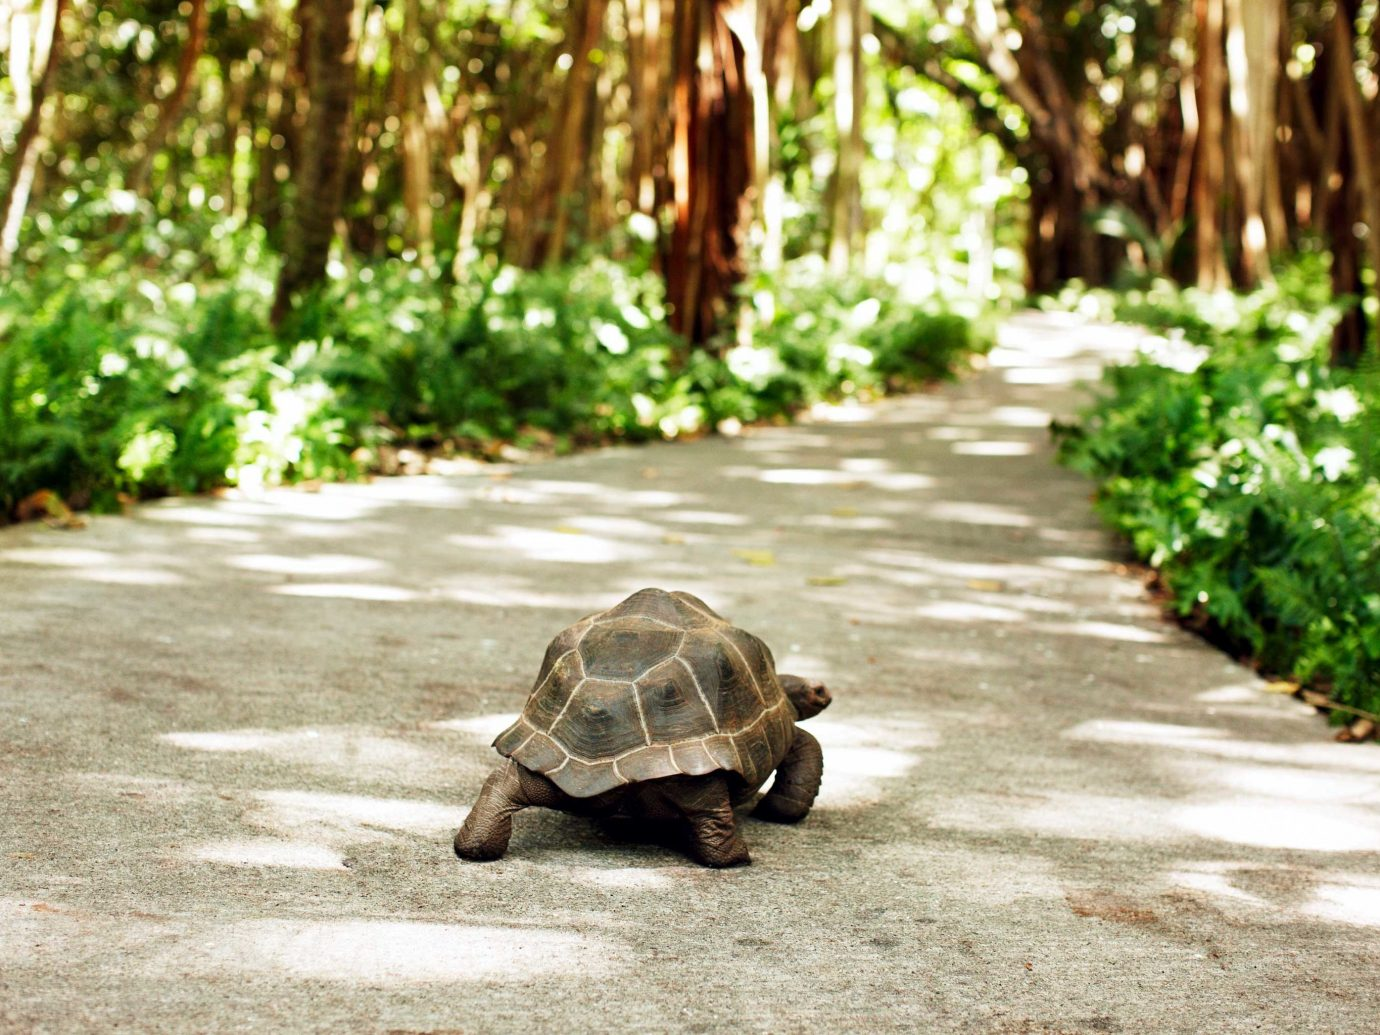 Hotels Jungle Outdoors reptile tree animal turtle ground outdoor green tortoise lawn curb